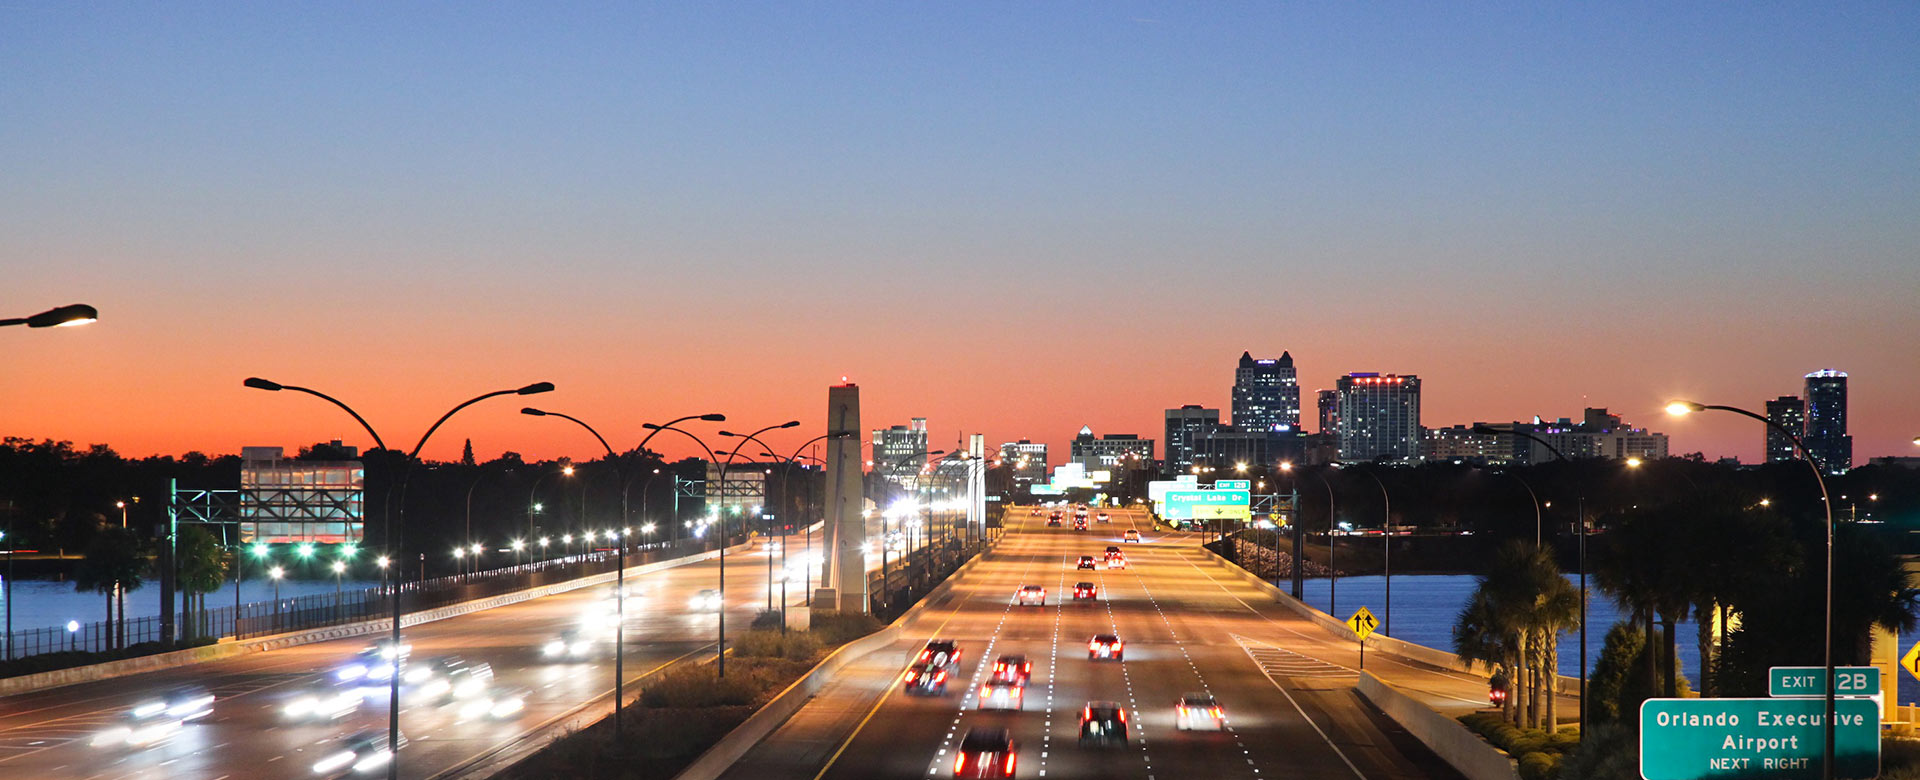 Central Florida Expressway toll road 408 near downtown Orlando at twilight